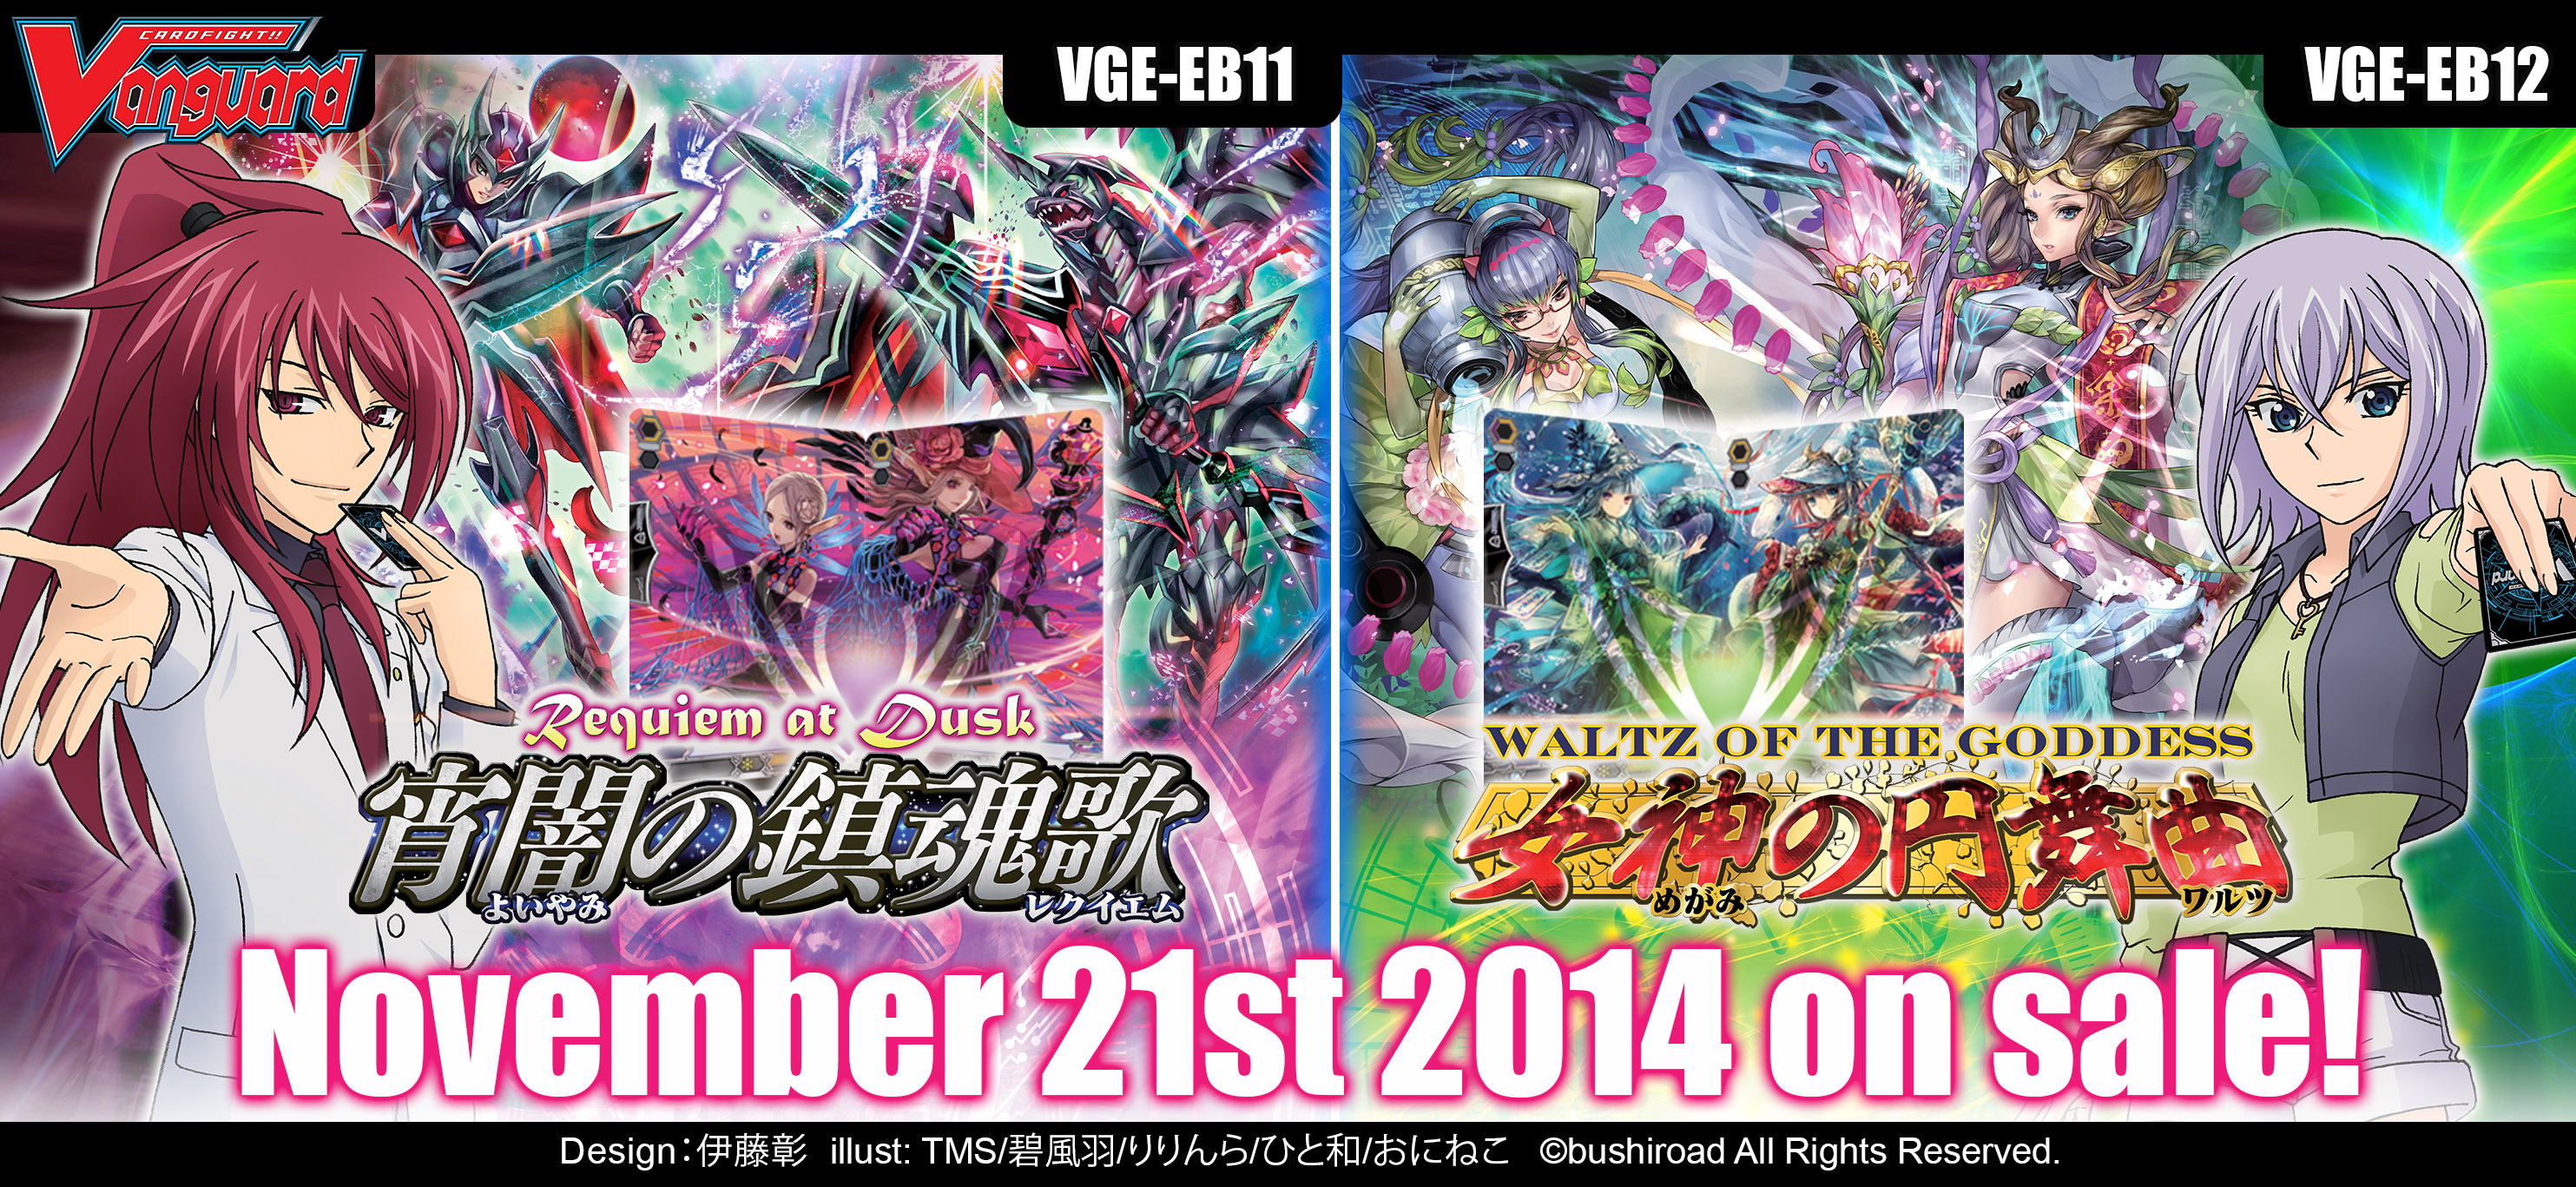 Extra Booster Vol. 11 & 12 on Sale November 12, 2014!